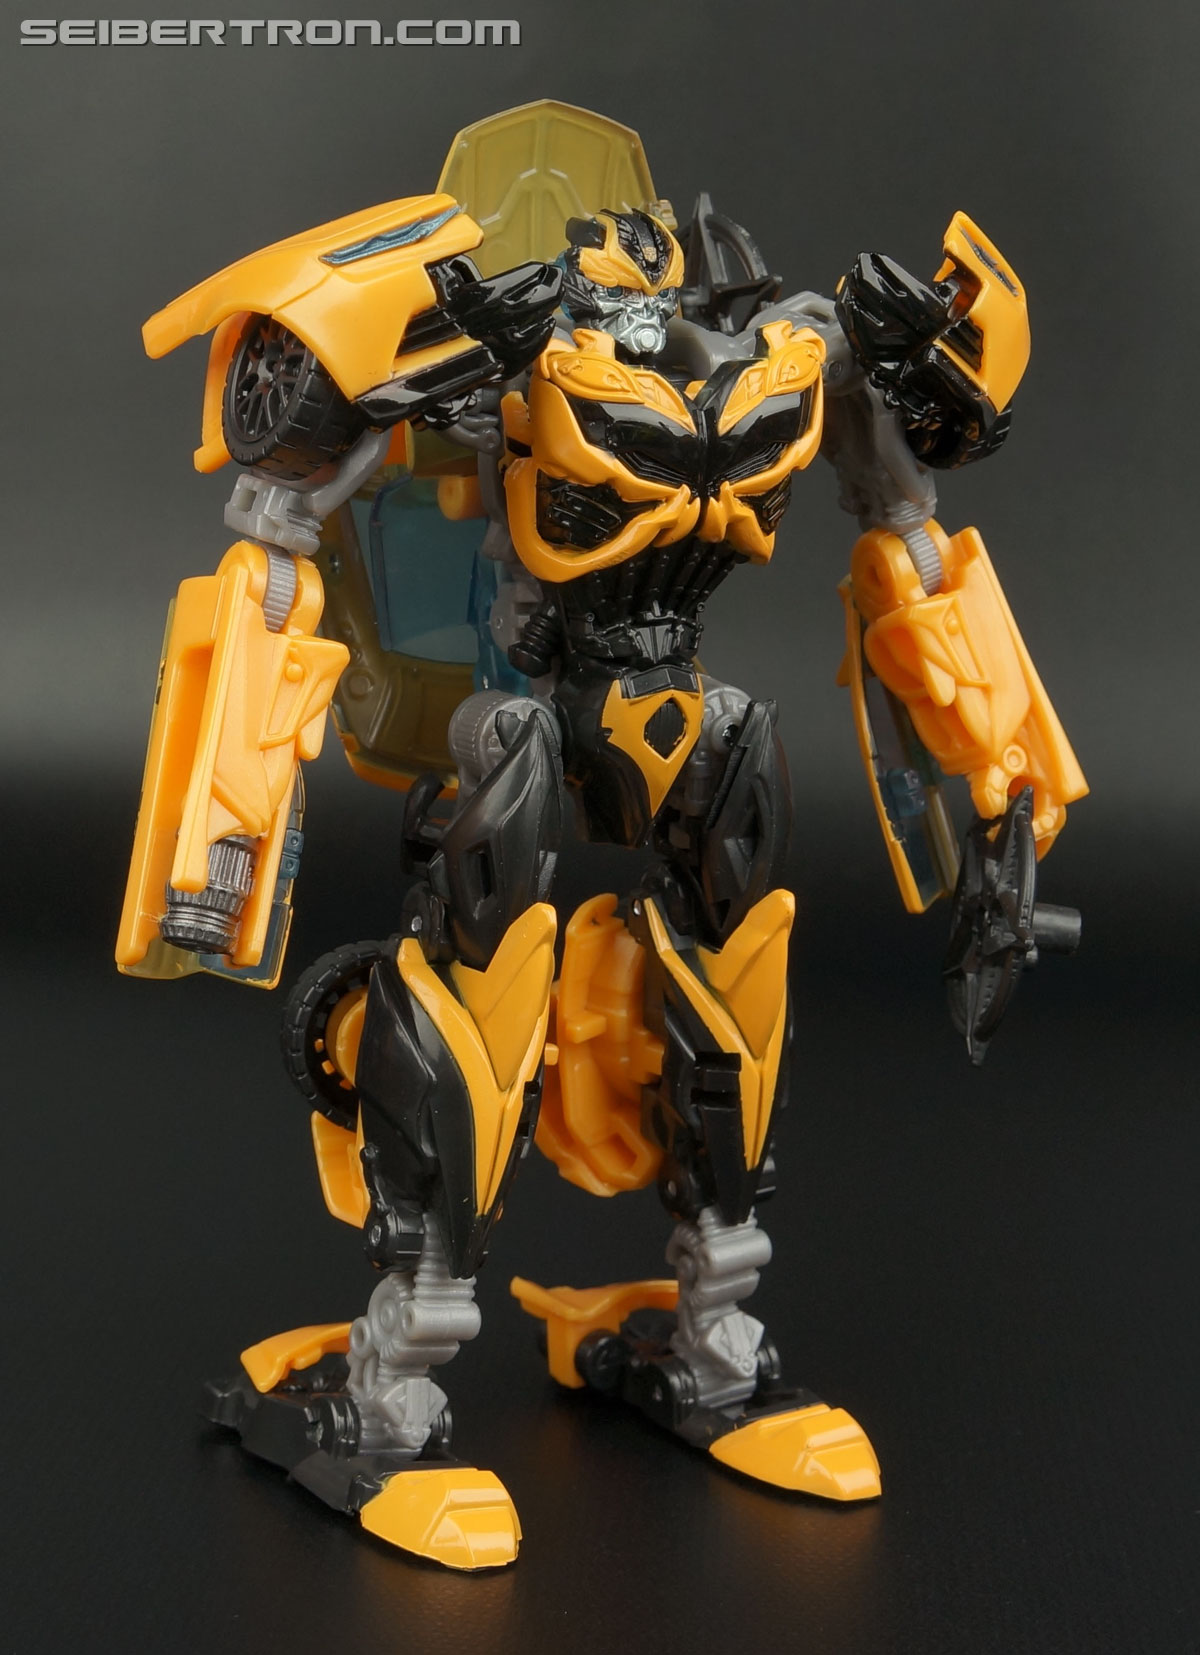 Transformers Age of Extinction: Generations Bumblebee (Image #66 of 190)